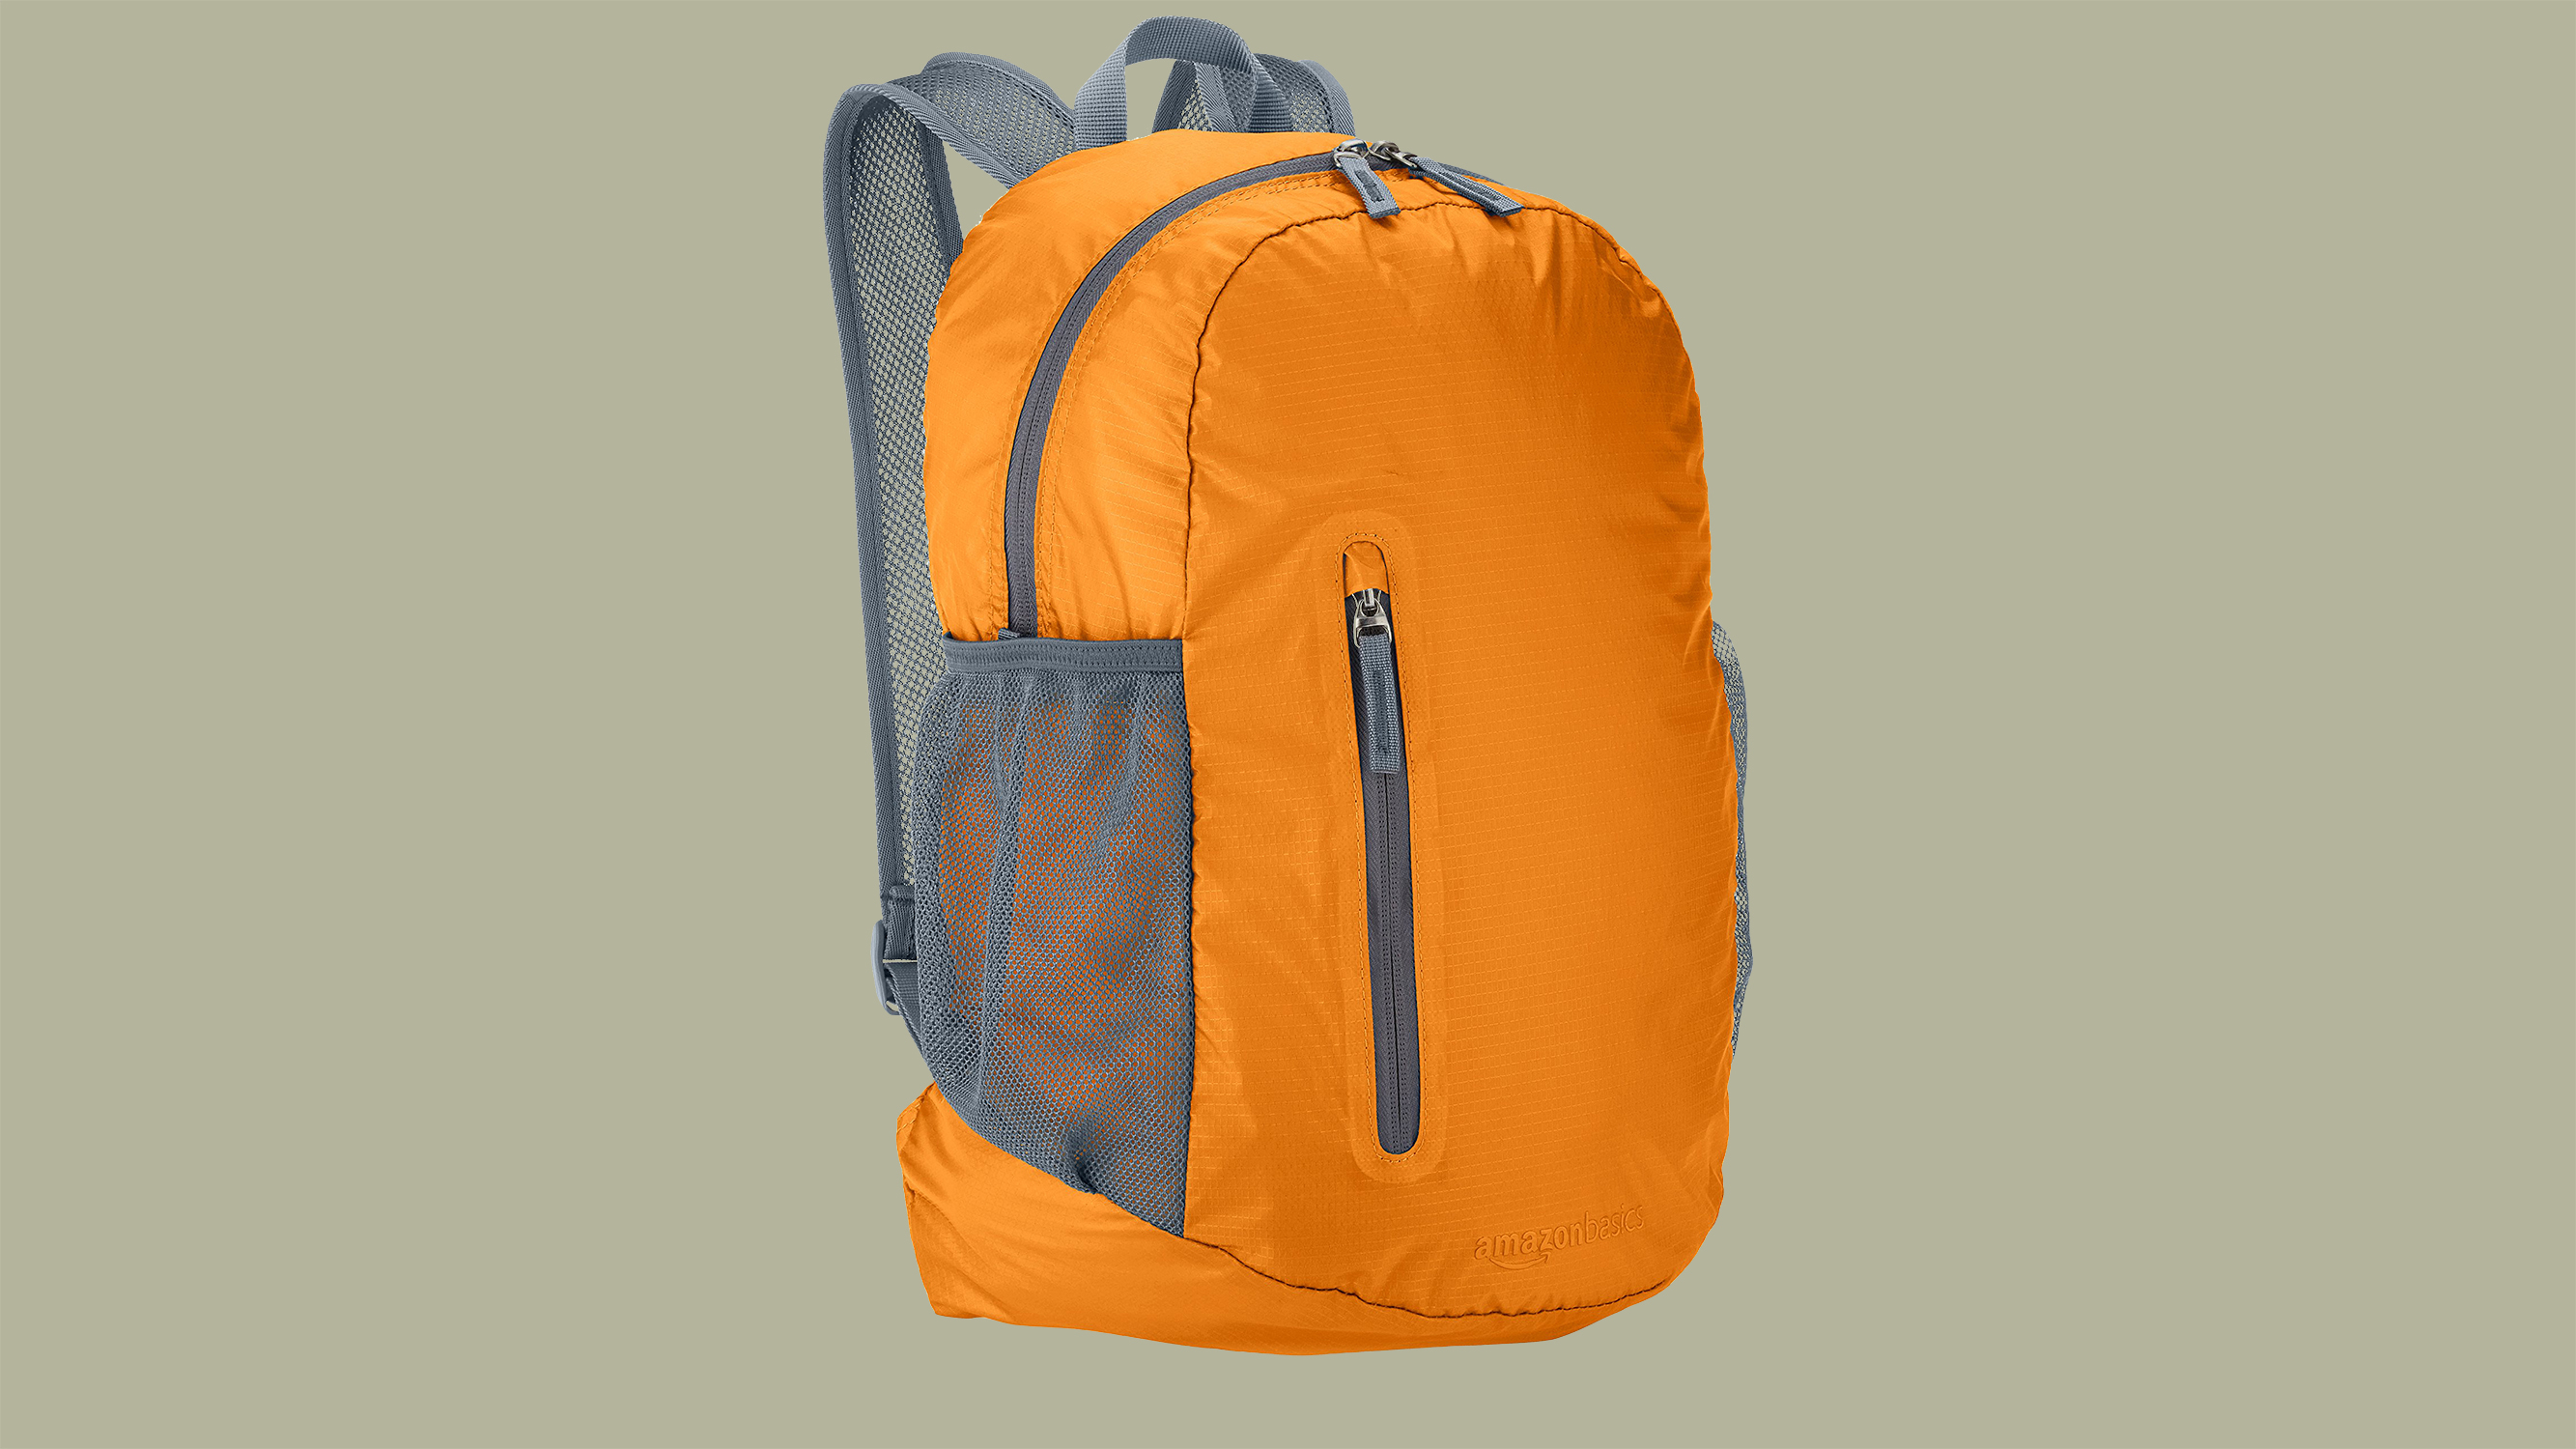 orange and gray camping backpack